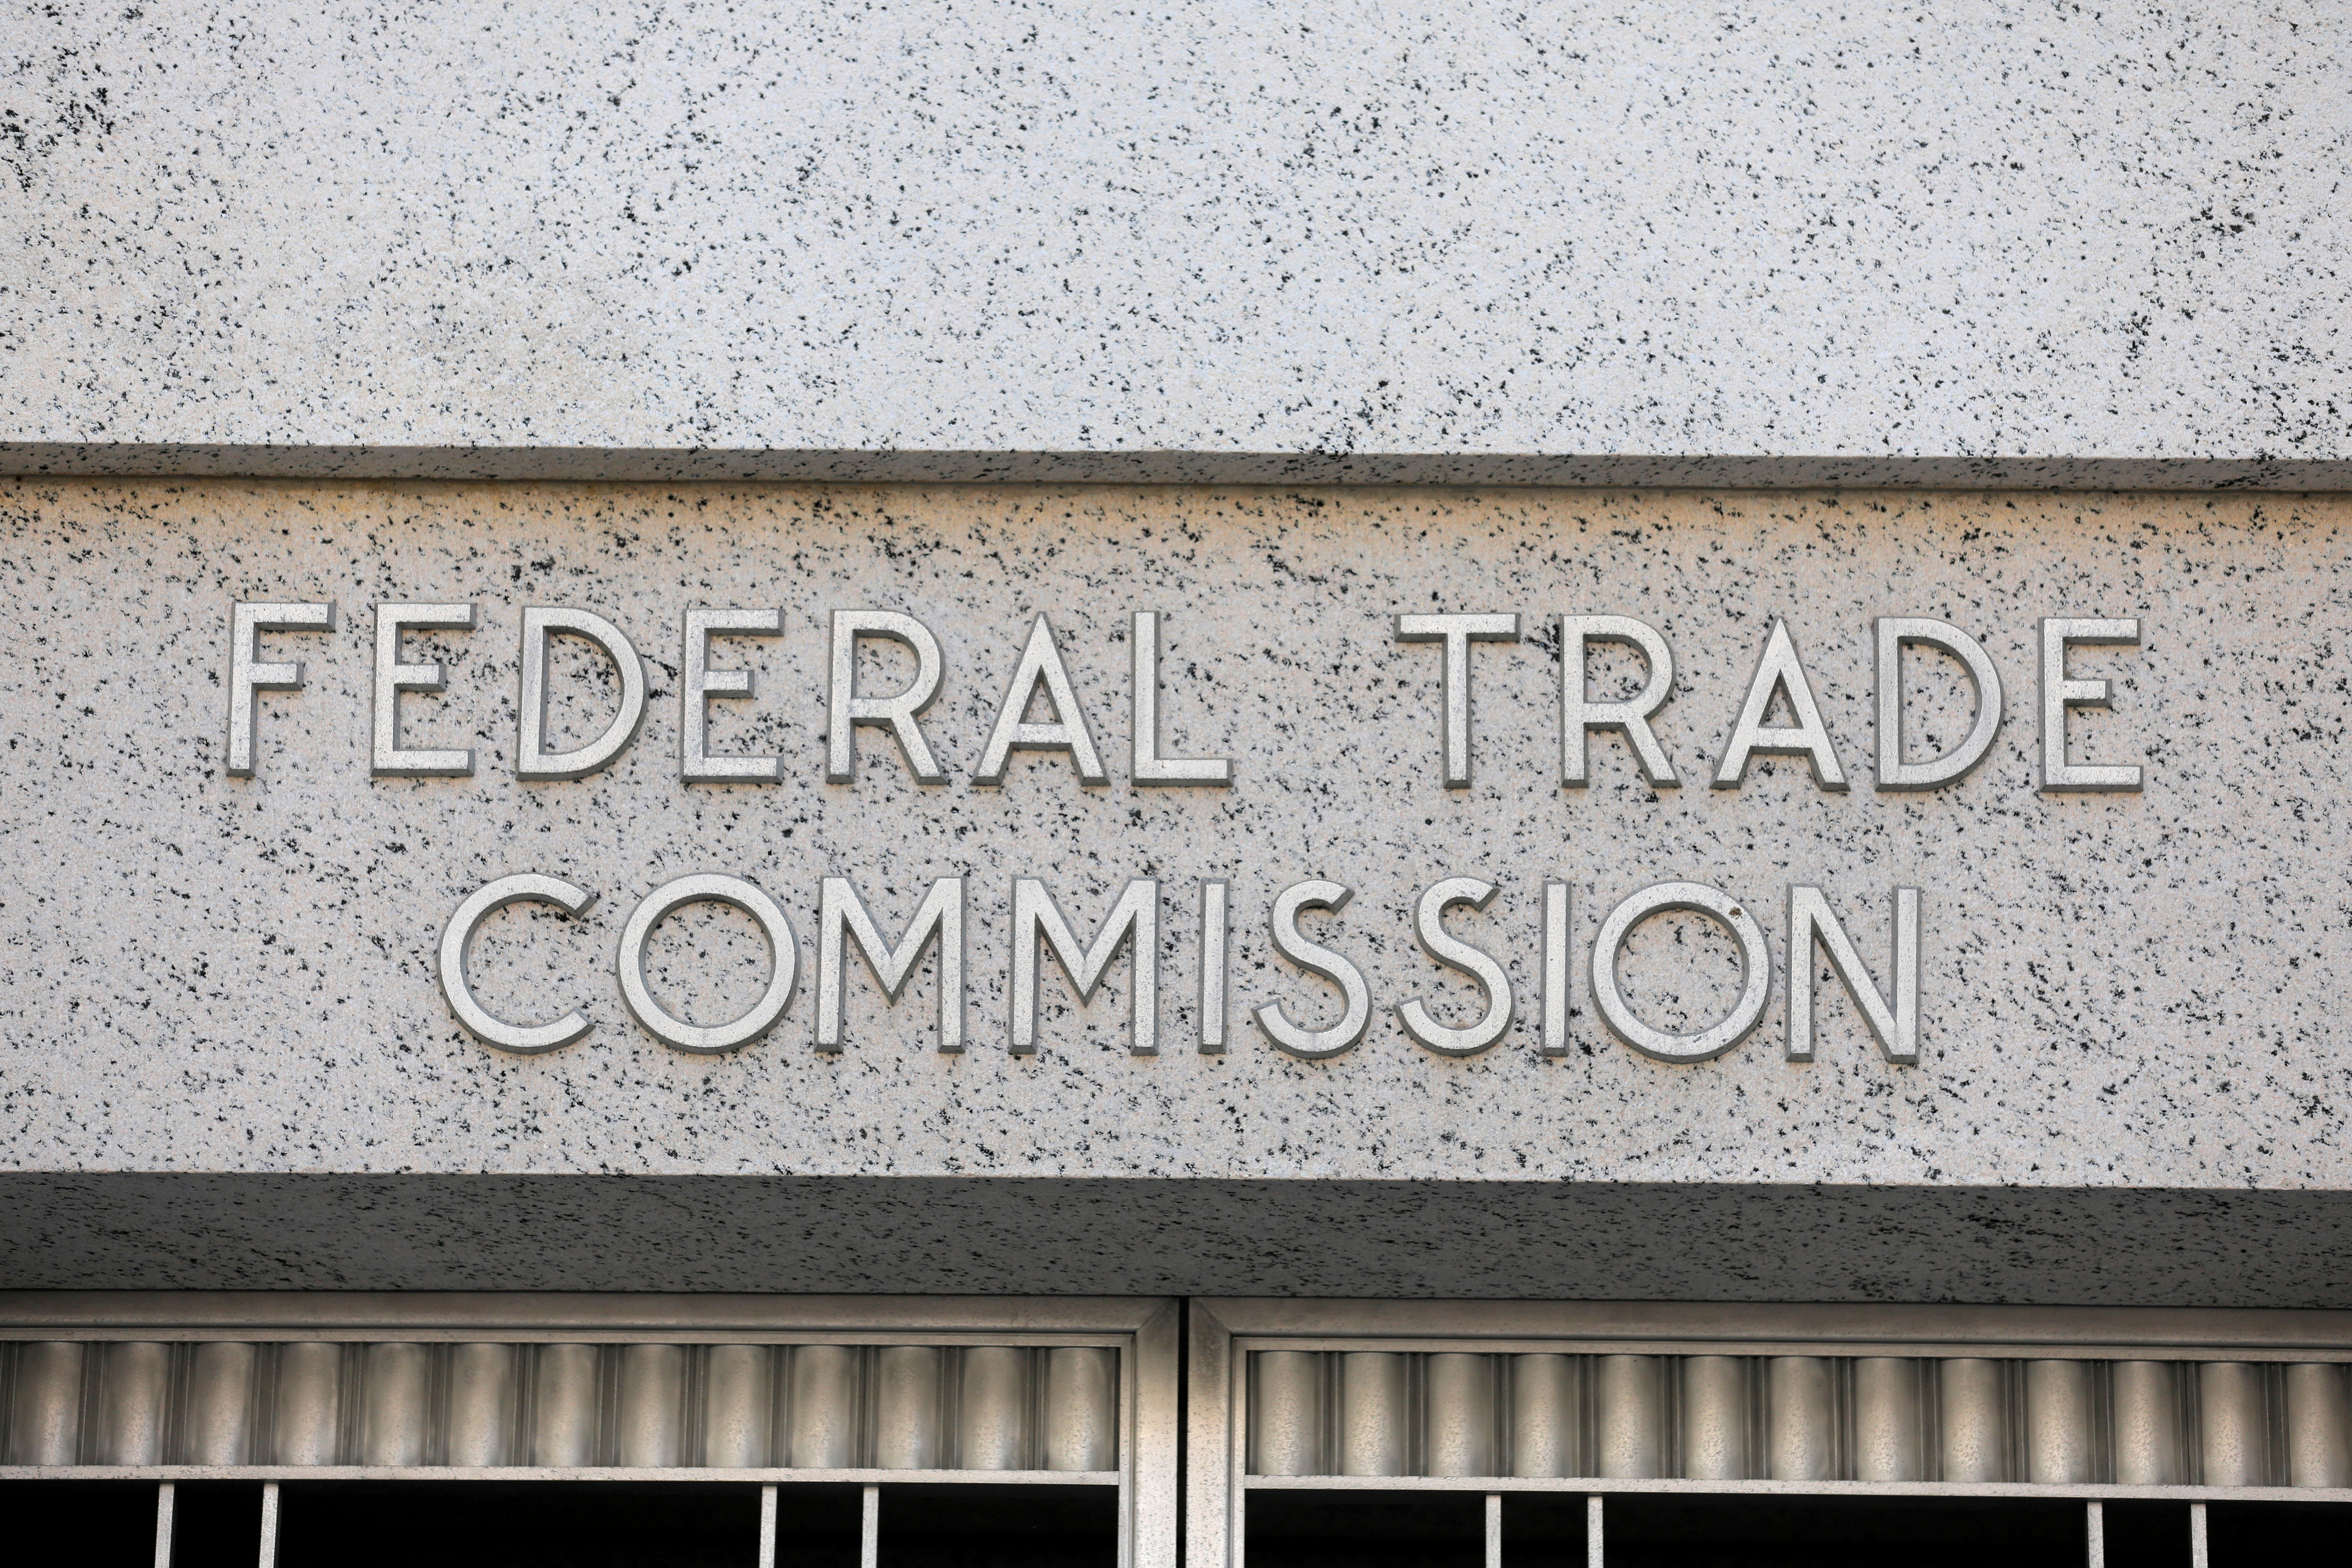 FILE PHOTO: Signage is seen at the Federal Trade Commission headquarters in Washington, D.C., U.S., August 29, 2020. REUTERS/Andrew Kelly